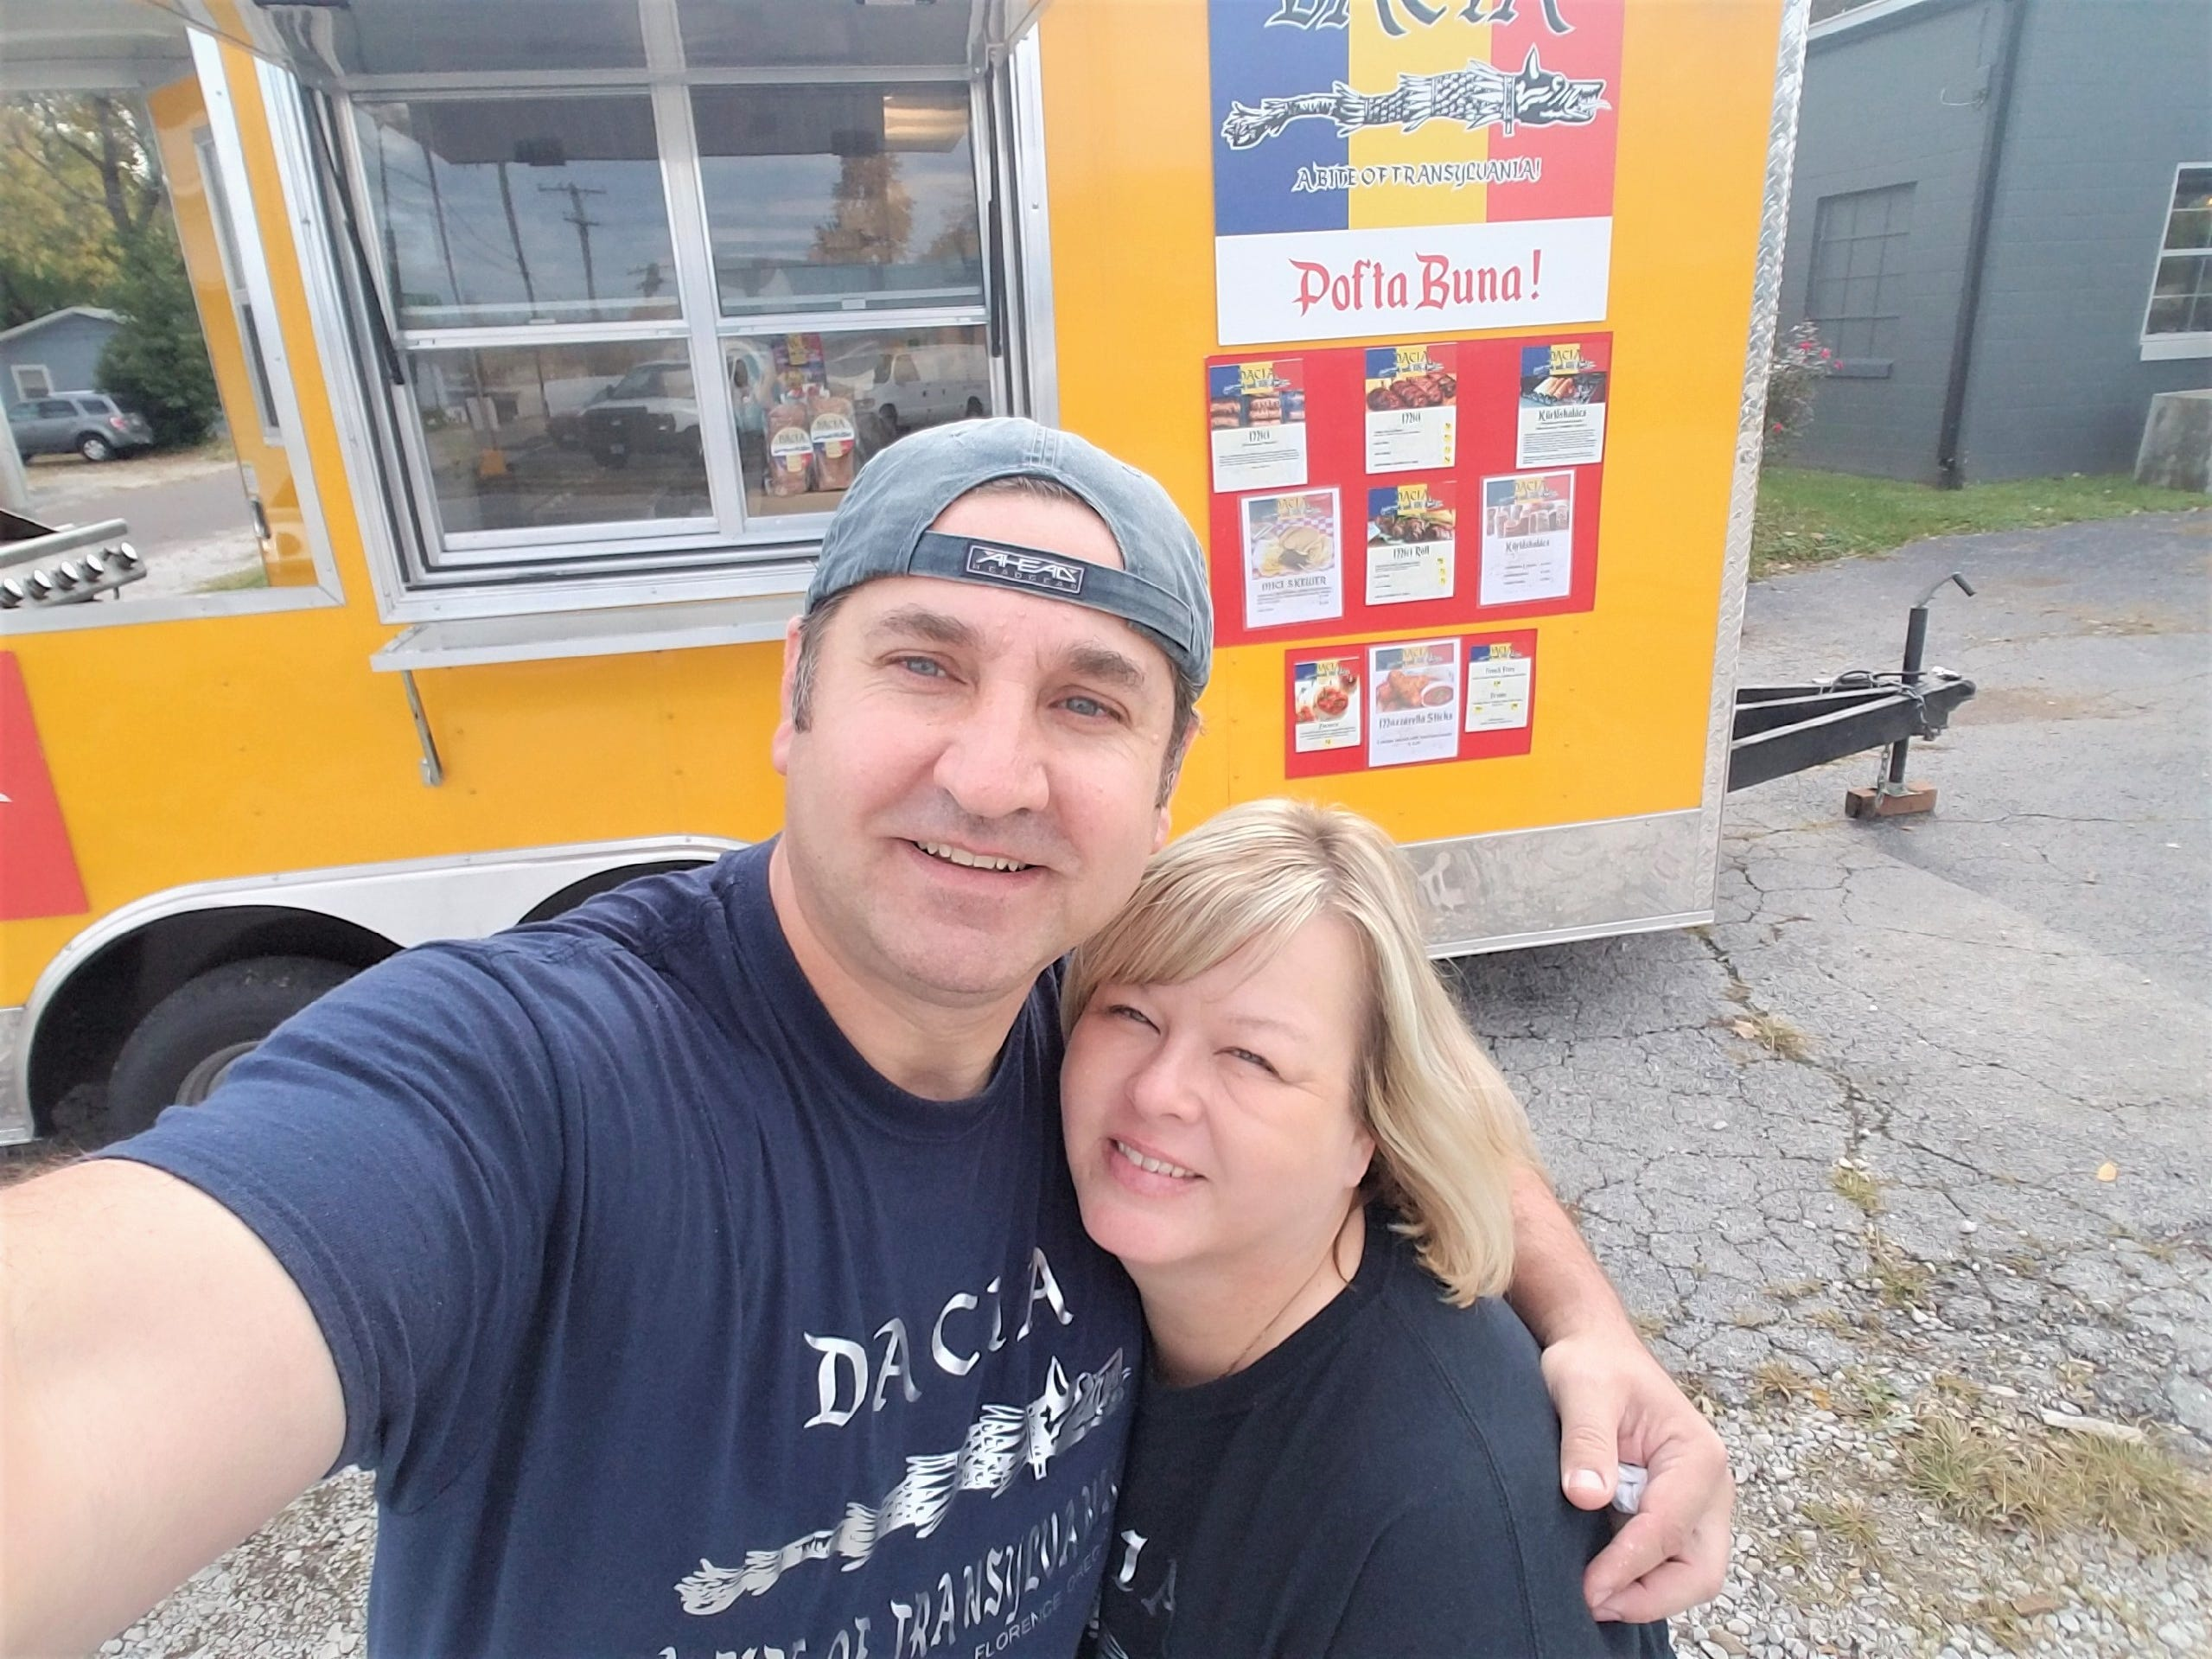 Romulus and Hannelore Manole opened a Romanian food truck named Dacia in August.